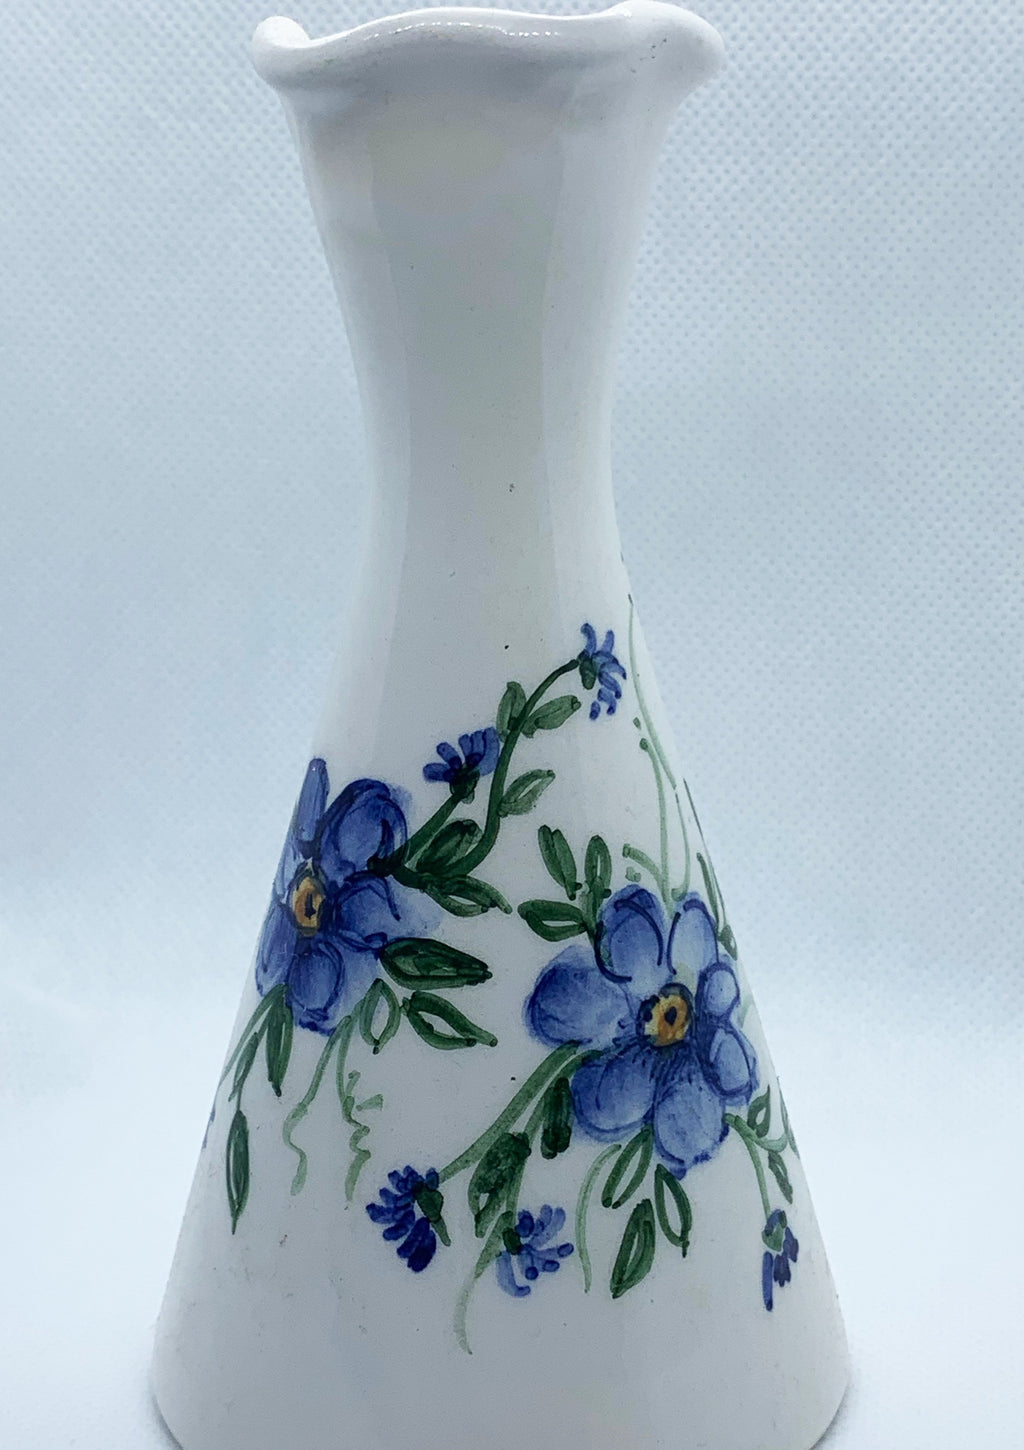 White ceramic vase with flowers